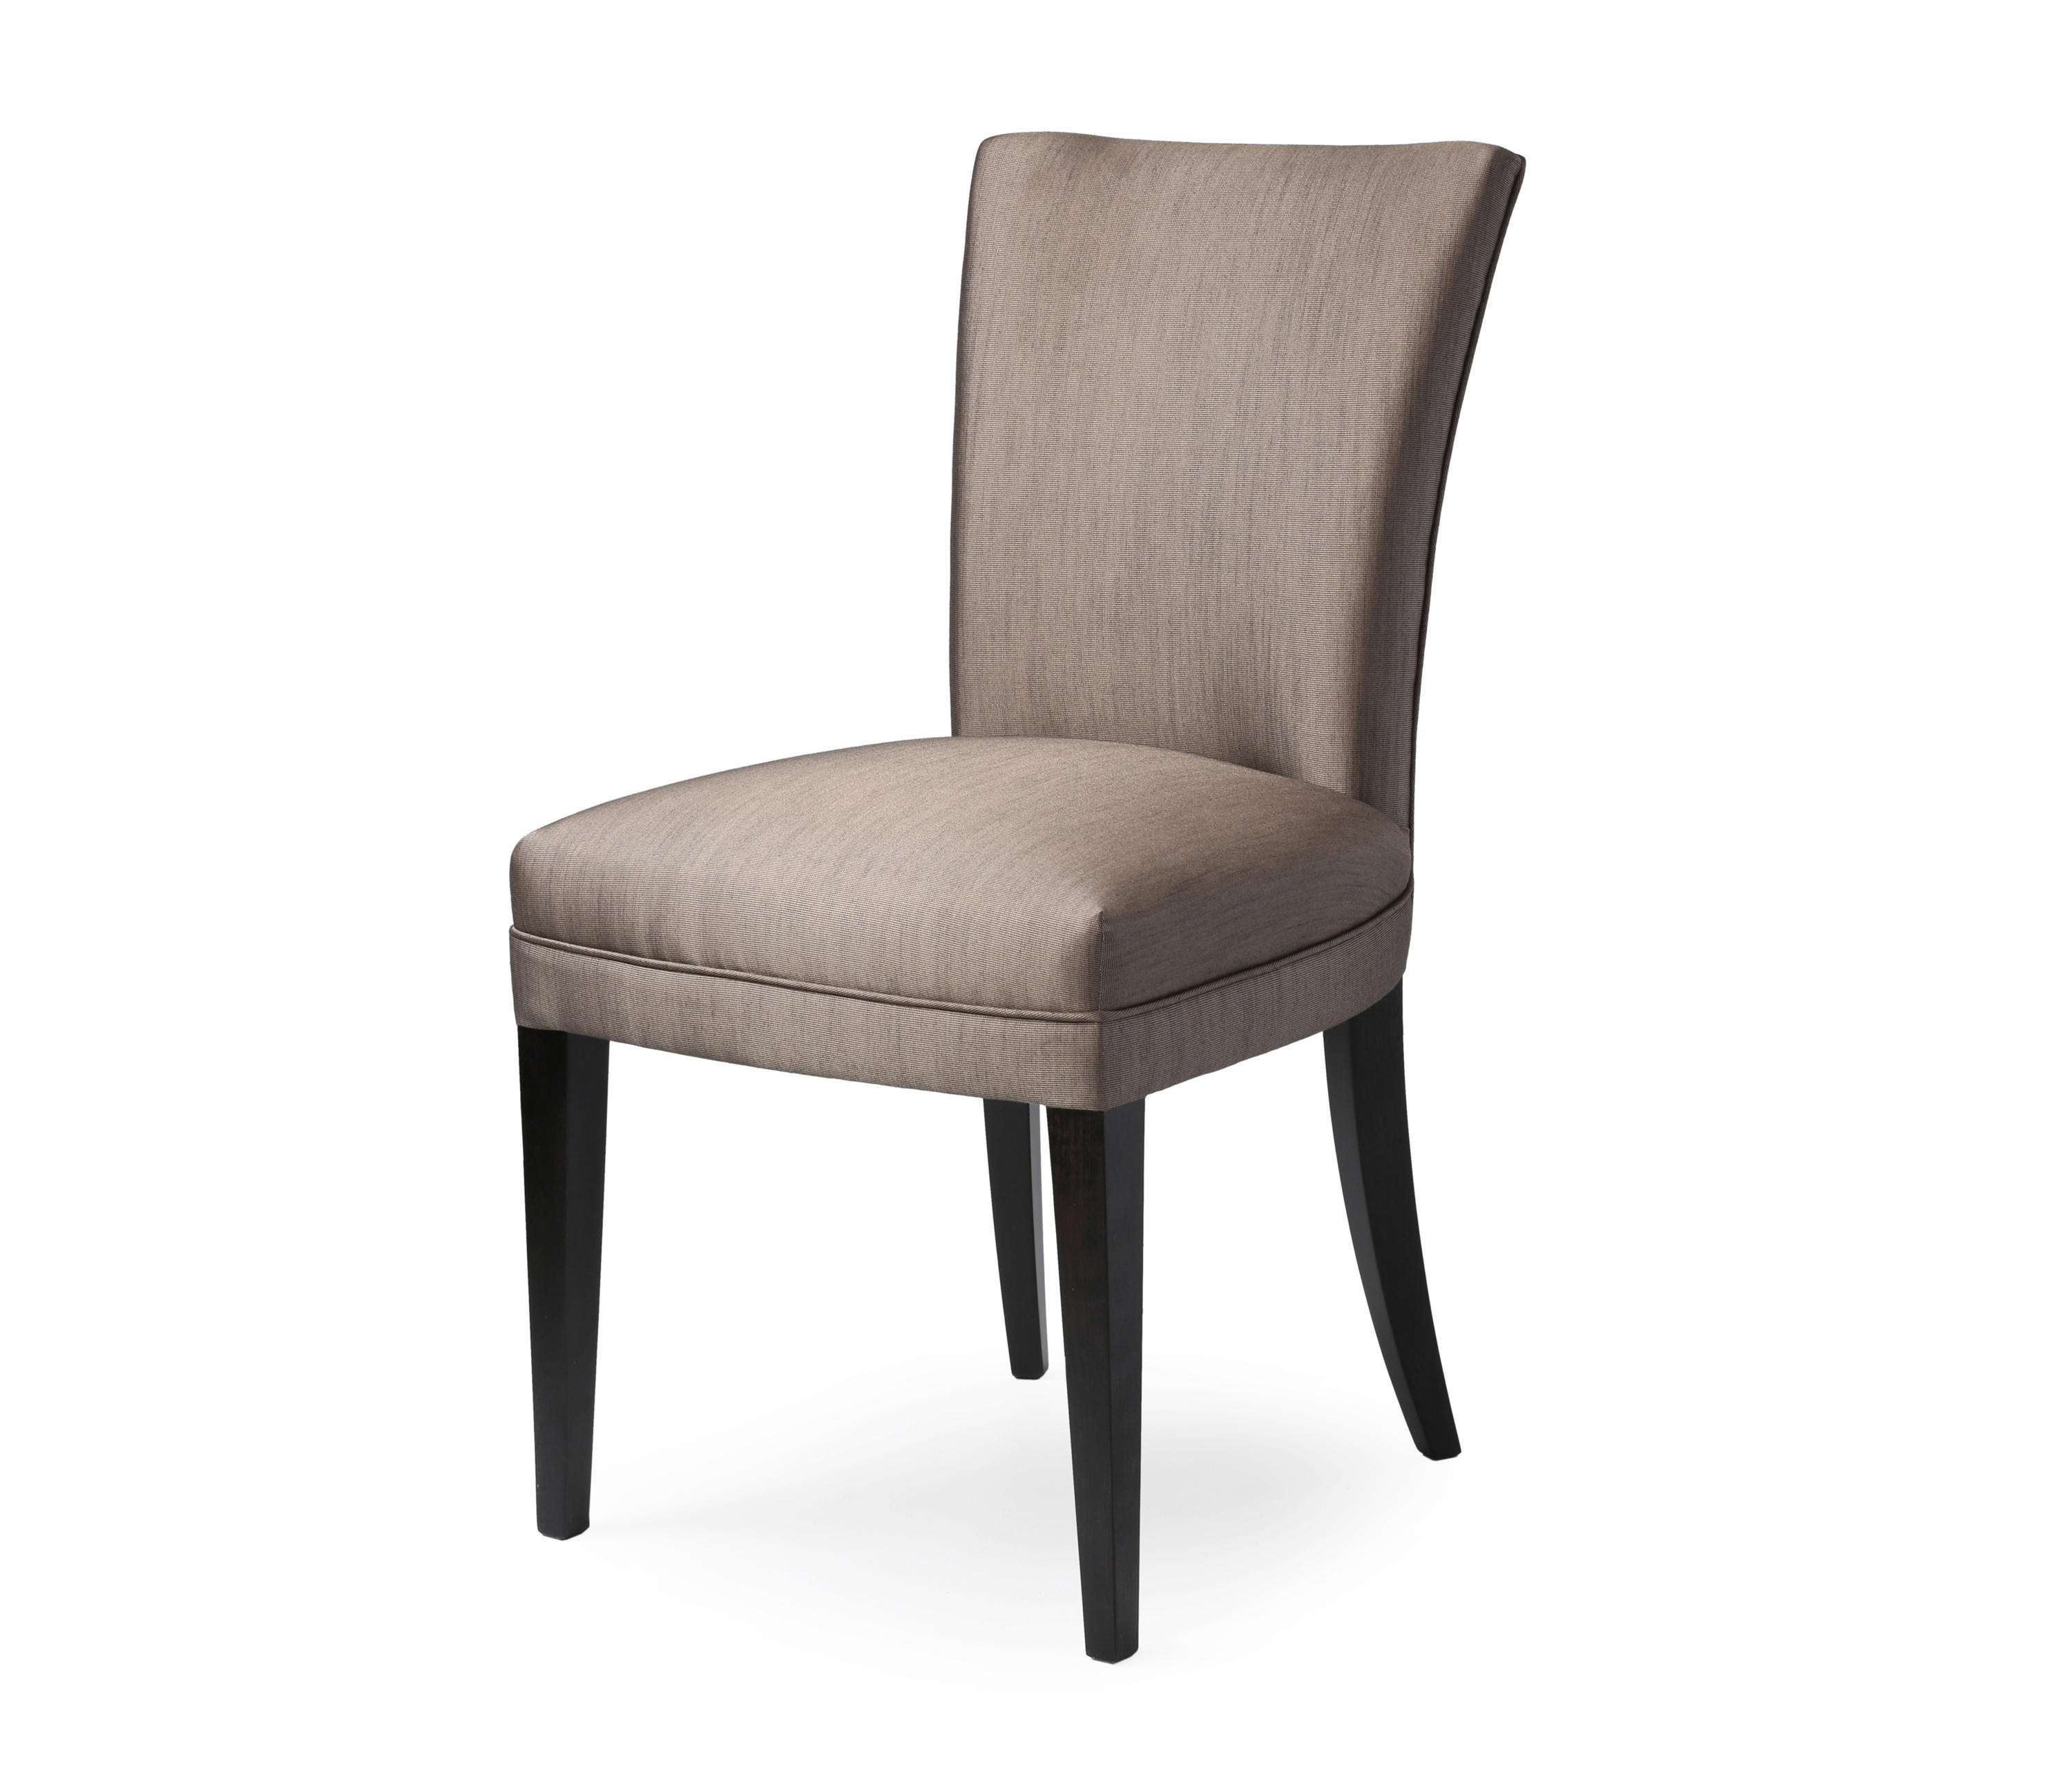 Paris dining chair chairs from the sofa company